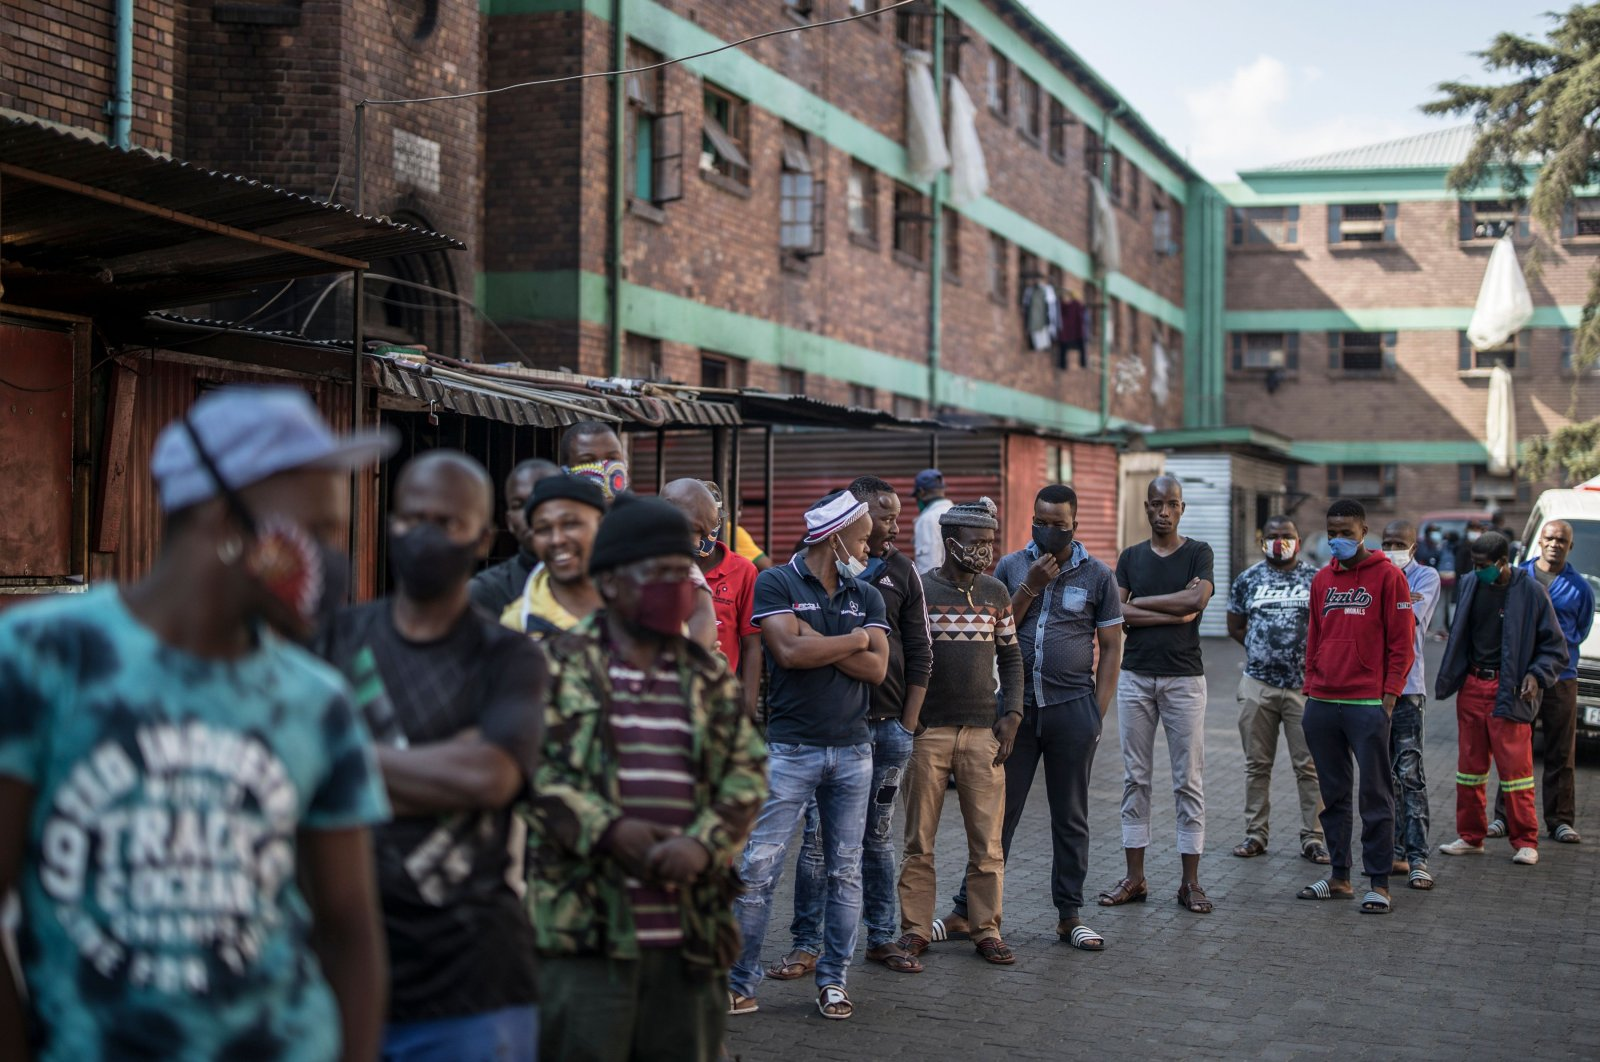 Men line up as Ministry of Health workers conduct a coronavirus screening and testing drive at the Wolhuter men's hostel in the Jeppestown district of Johannesburg, South Africa, May 14, 2020. (AFP Photo)